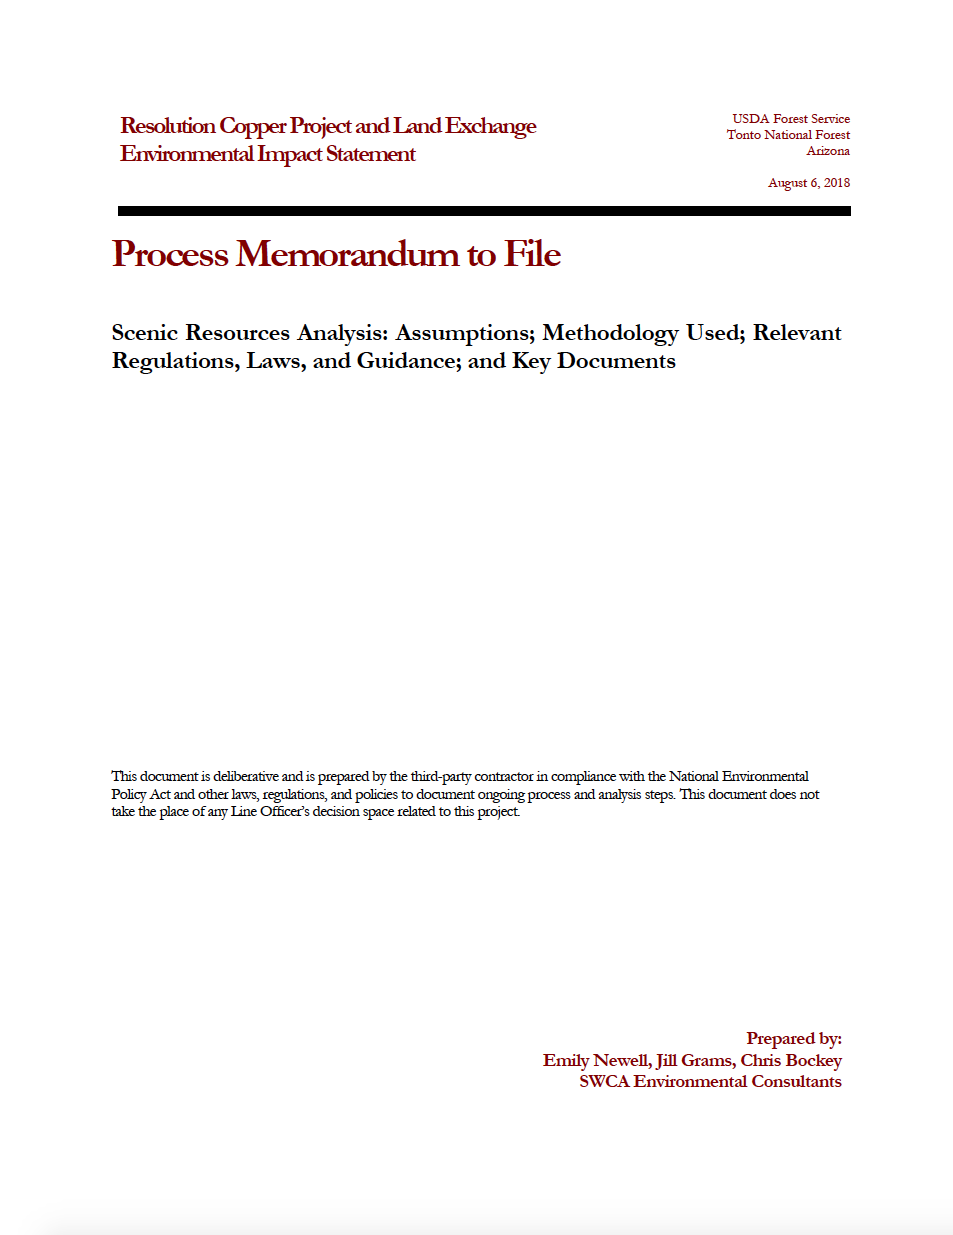 Thumbnail image of document cover: Scenic Resources Analysis: Assumptions, Methodology Used and Relevant Regulations, Laws, and Guidance, and Key Documents